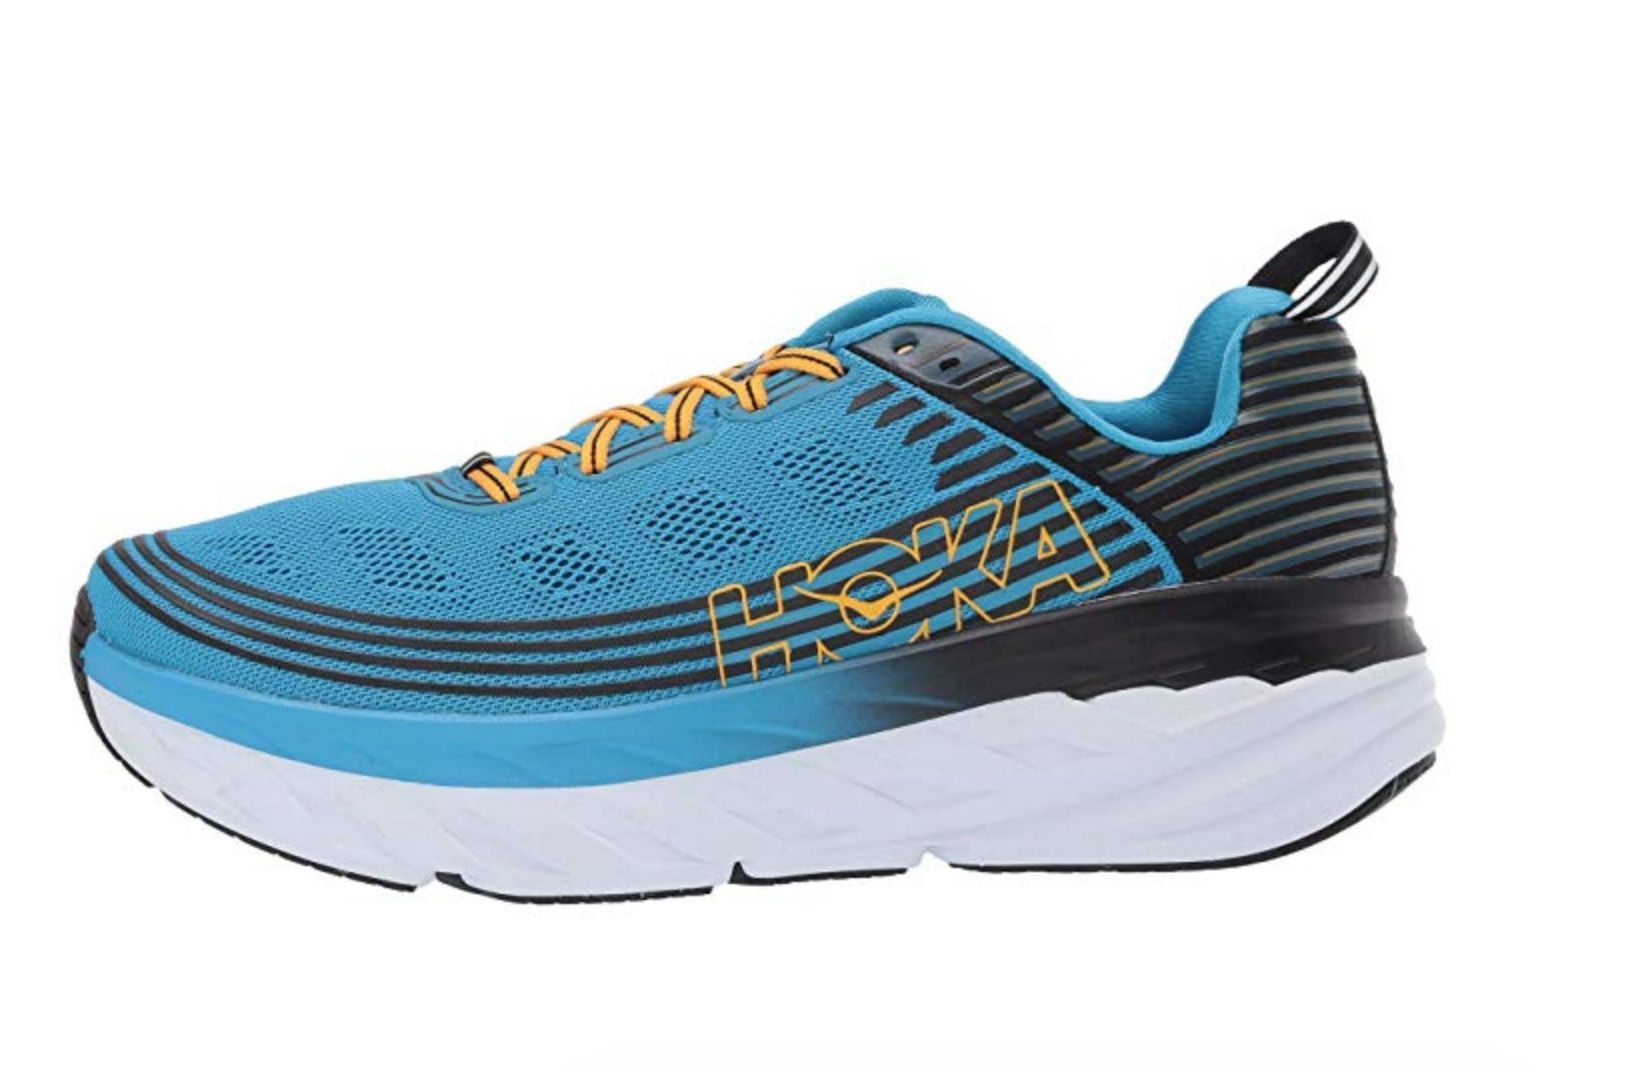 Hoka Running Shoes 2019